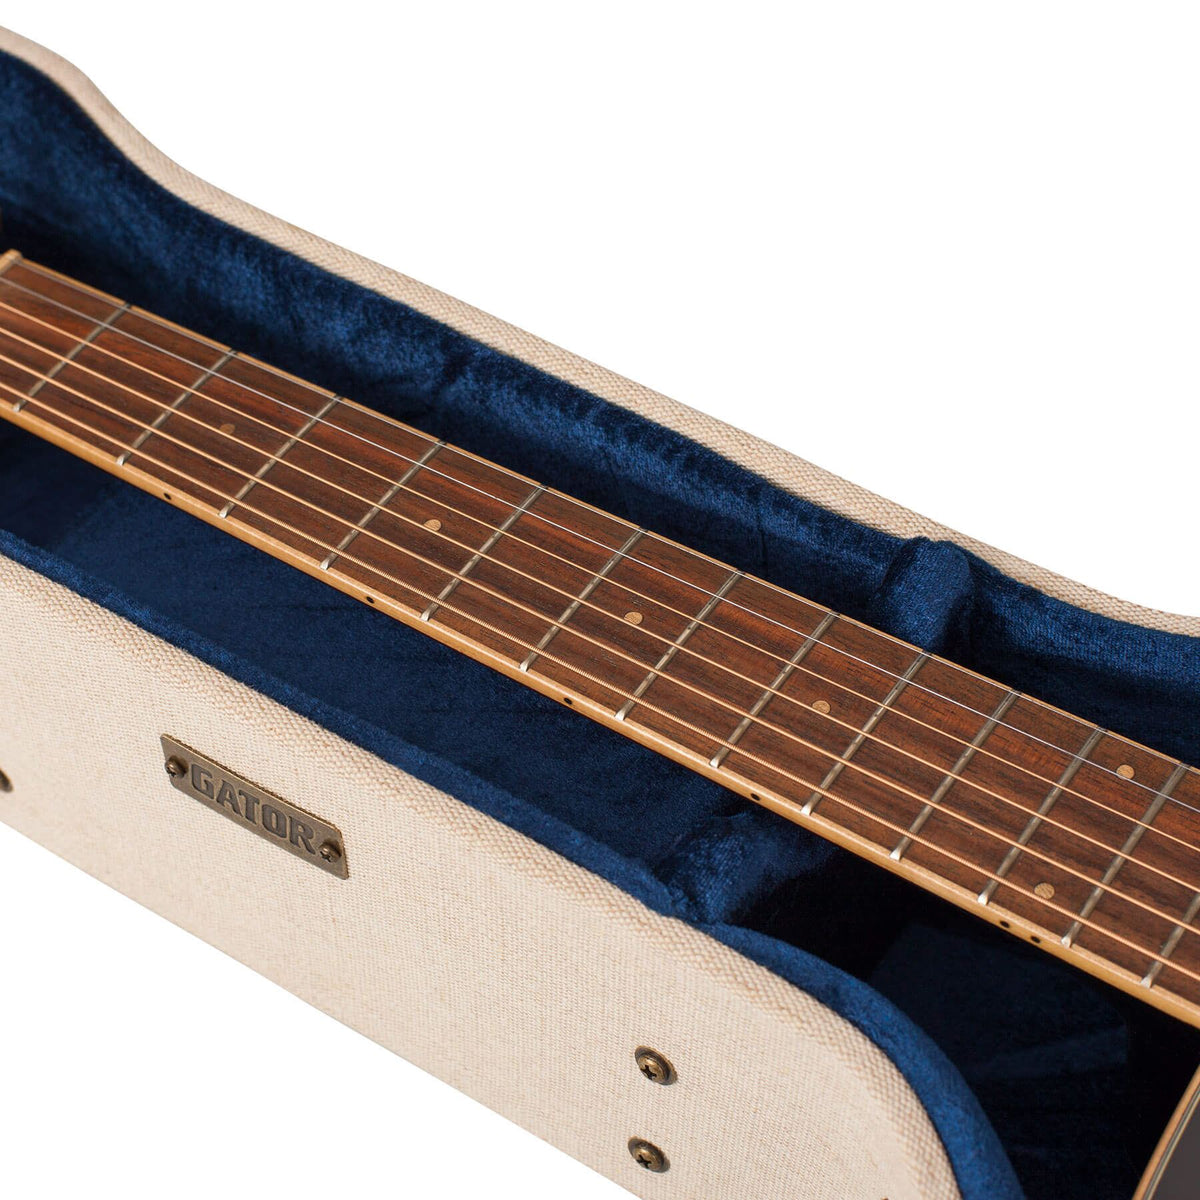 Gator Cases Journeyman Dreadnought Acoustic Guitar Case for Washburn WD10SCE, WD10SCE12, WD10SCEB Acoustic Guitars